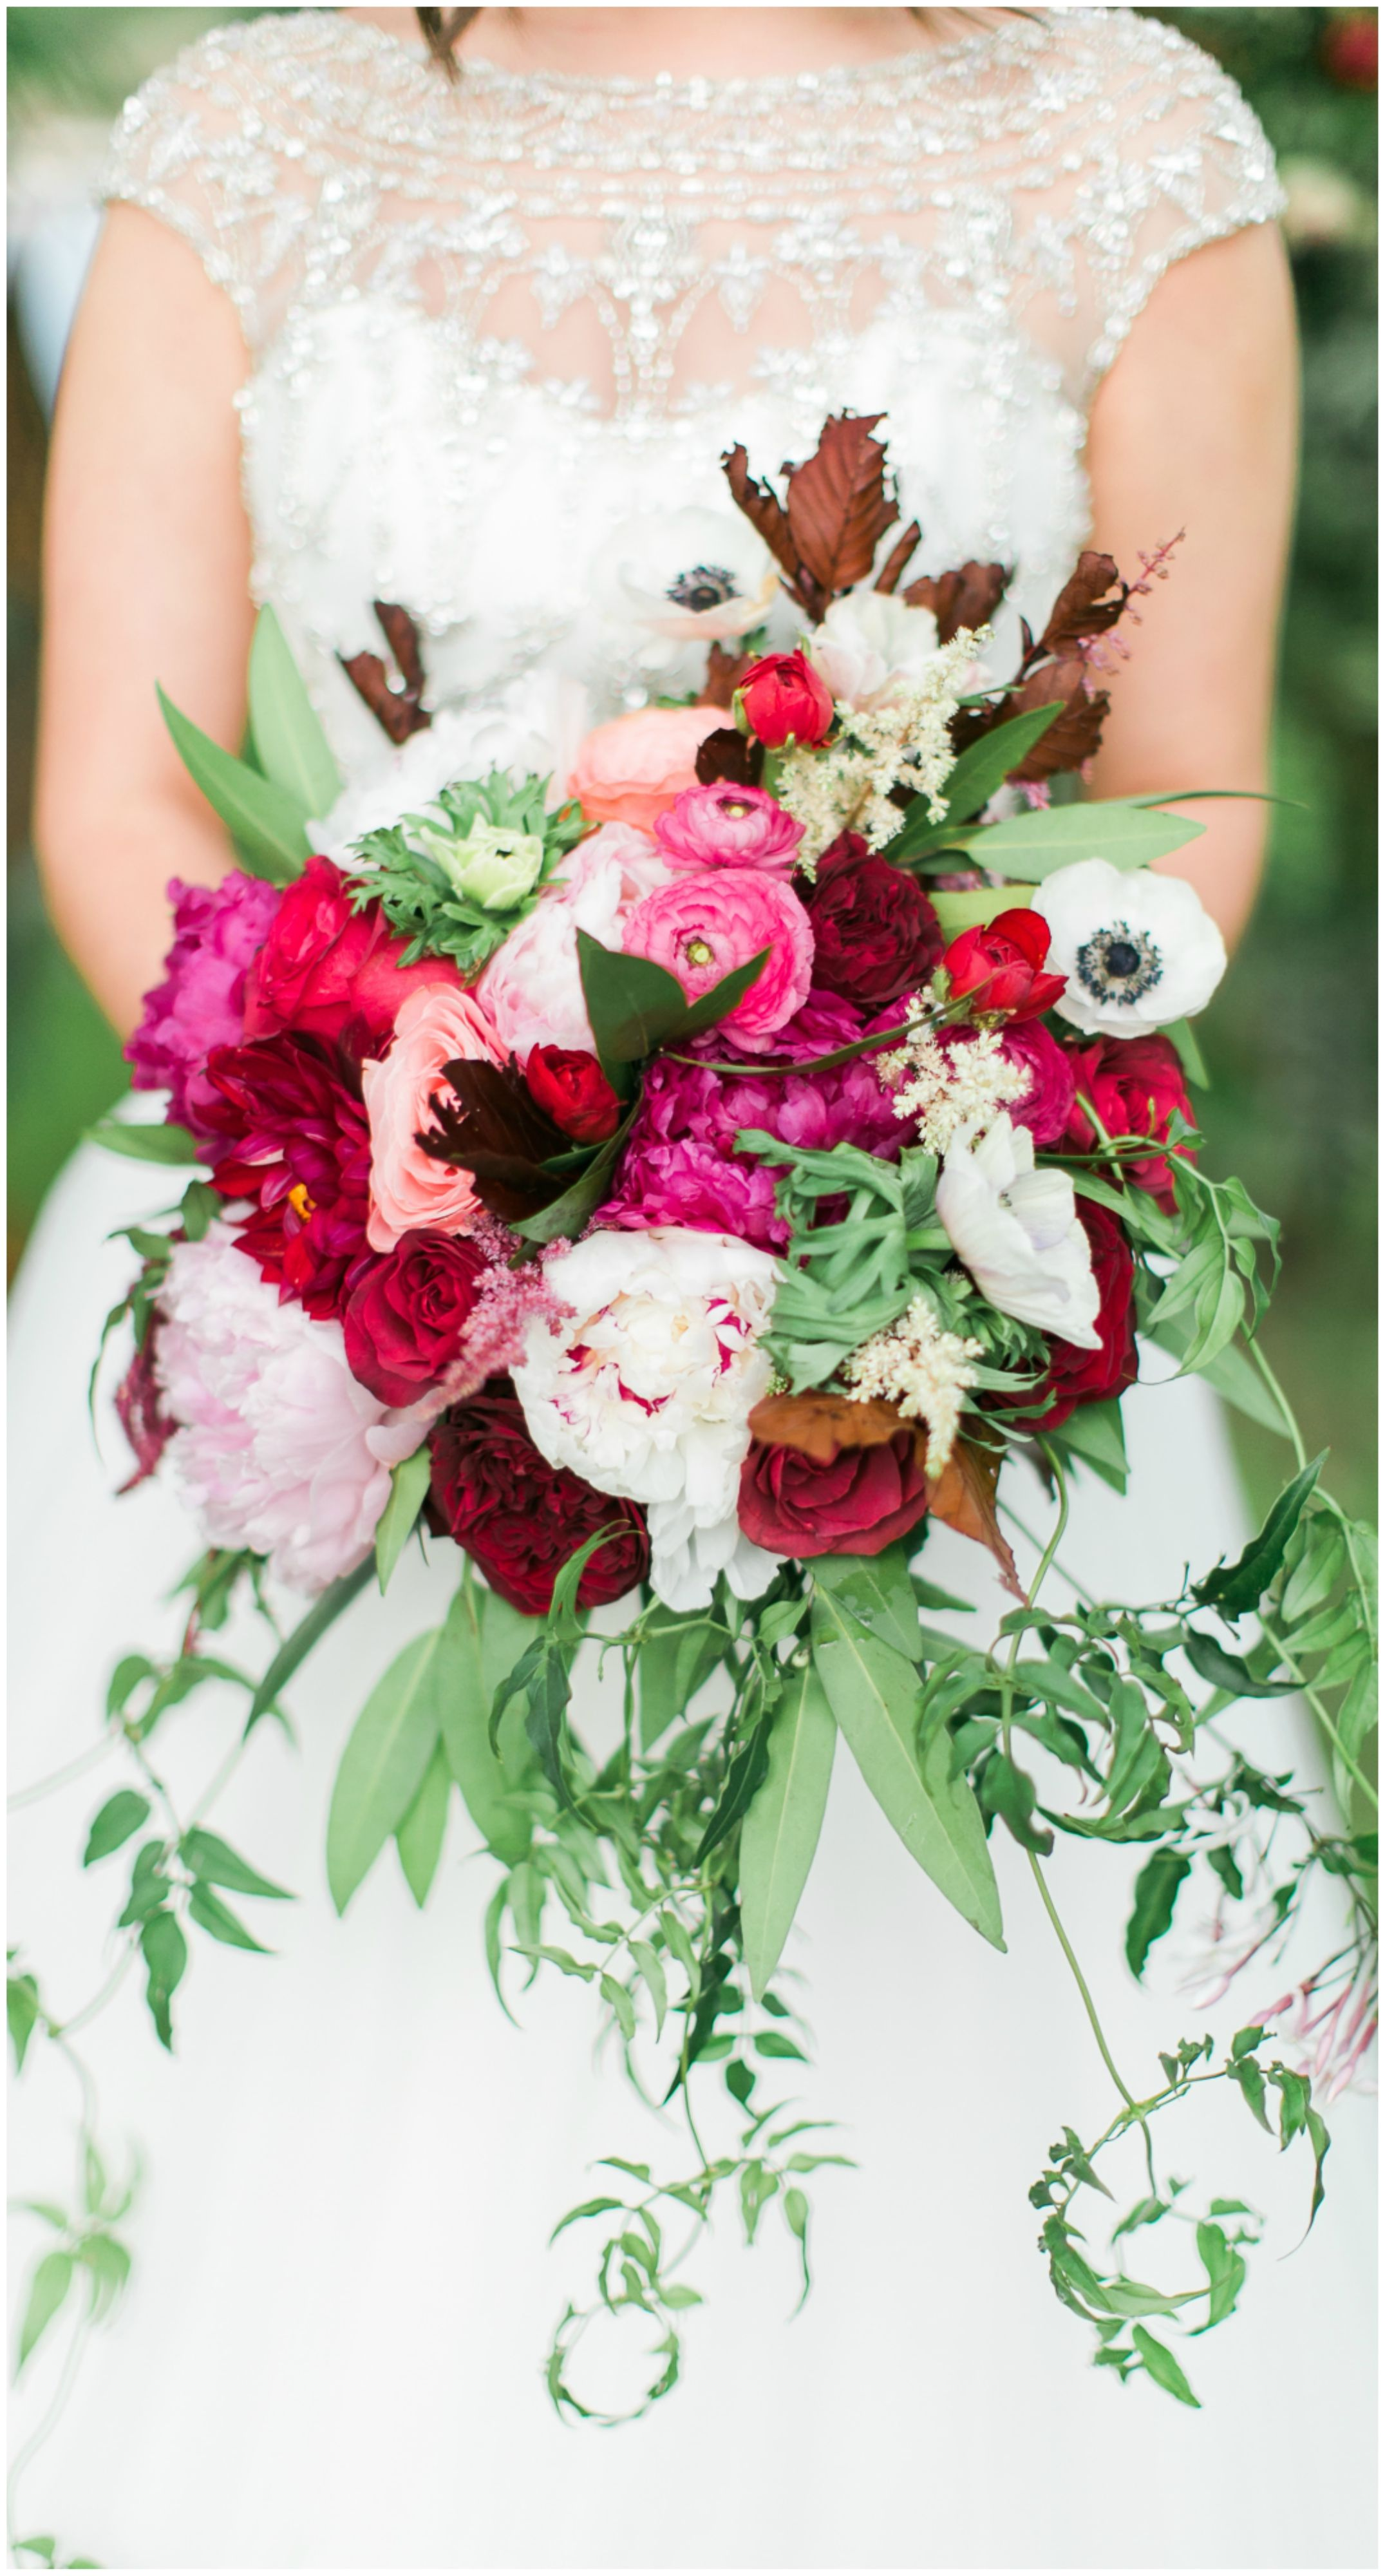 Stunning Bridal Bouquet White Anemones Light Pink Peonies Ranunculus Burgundy Red Dahlias Peonies Dream Wedding Bouquet Wedding Bouquets Wedding Flowers